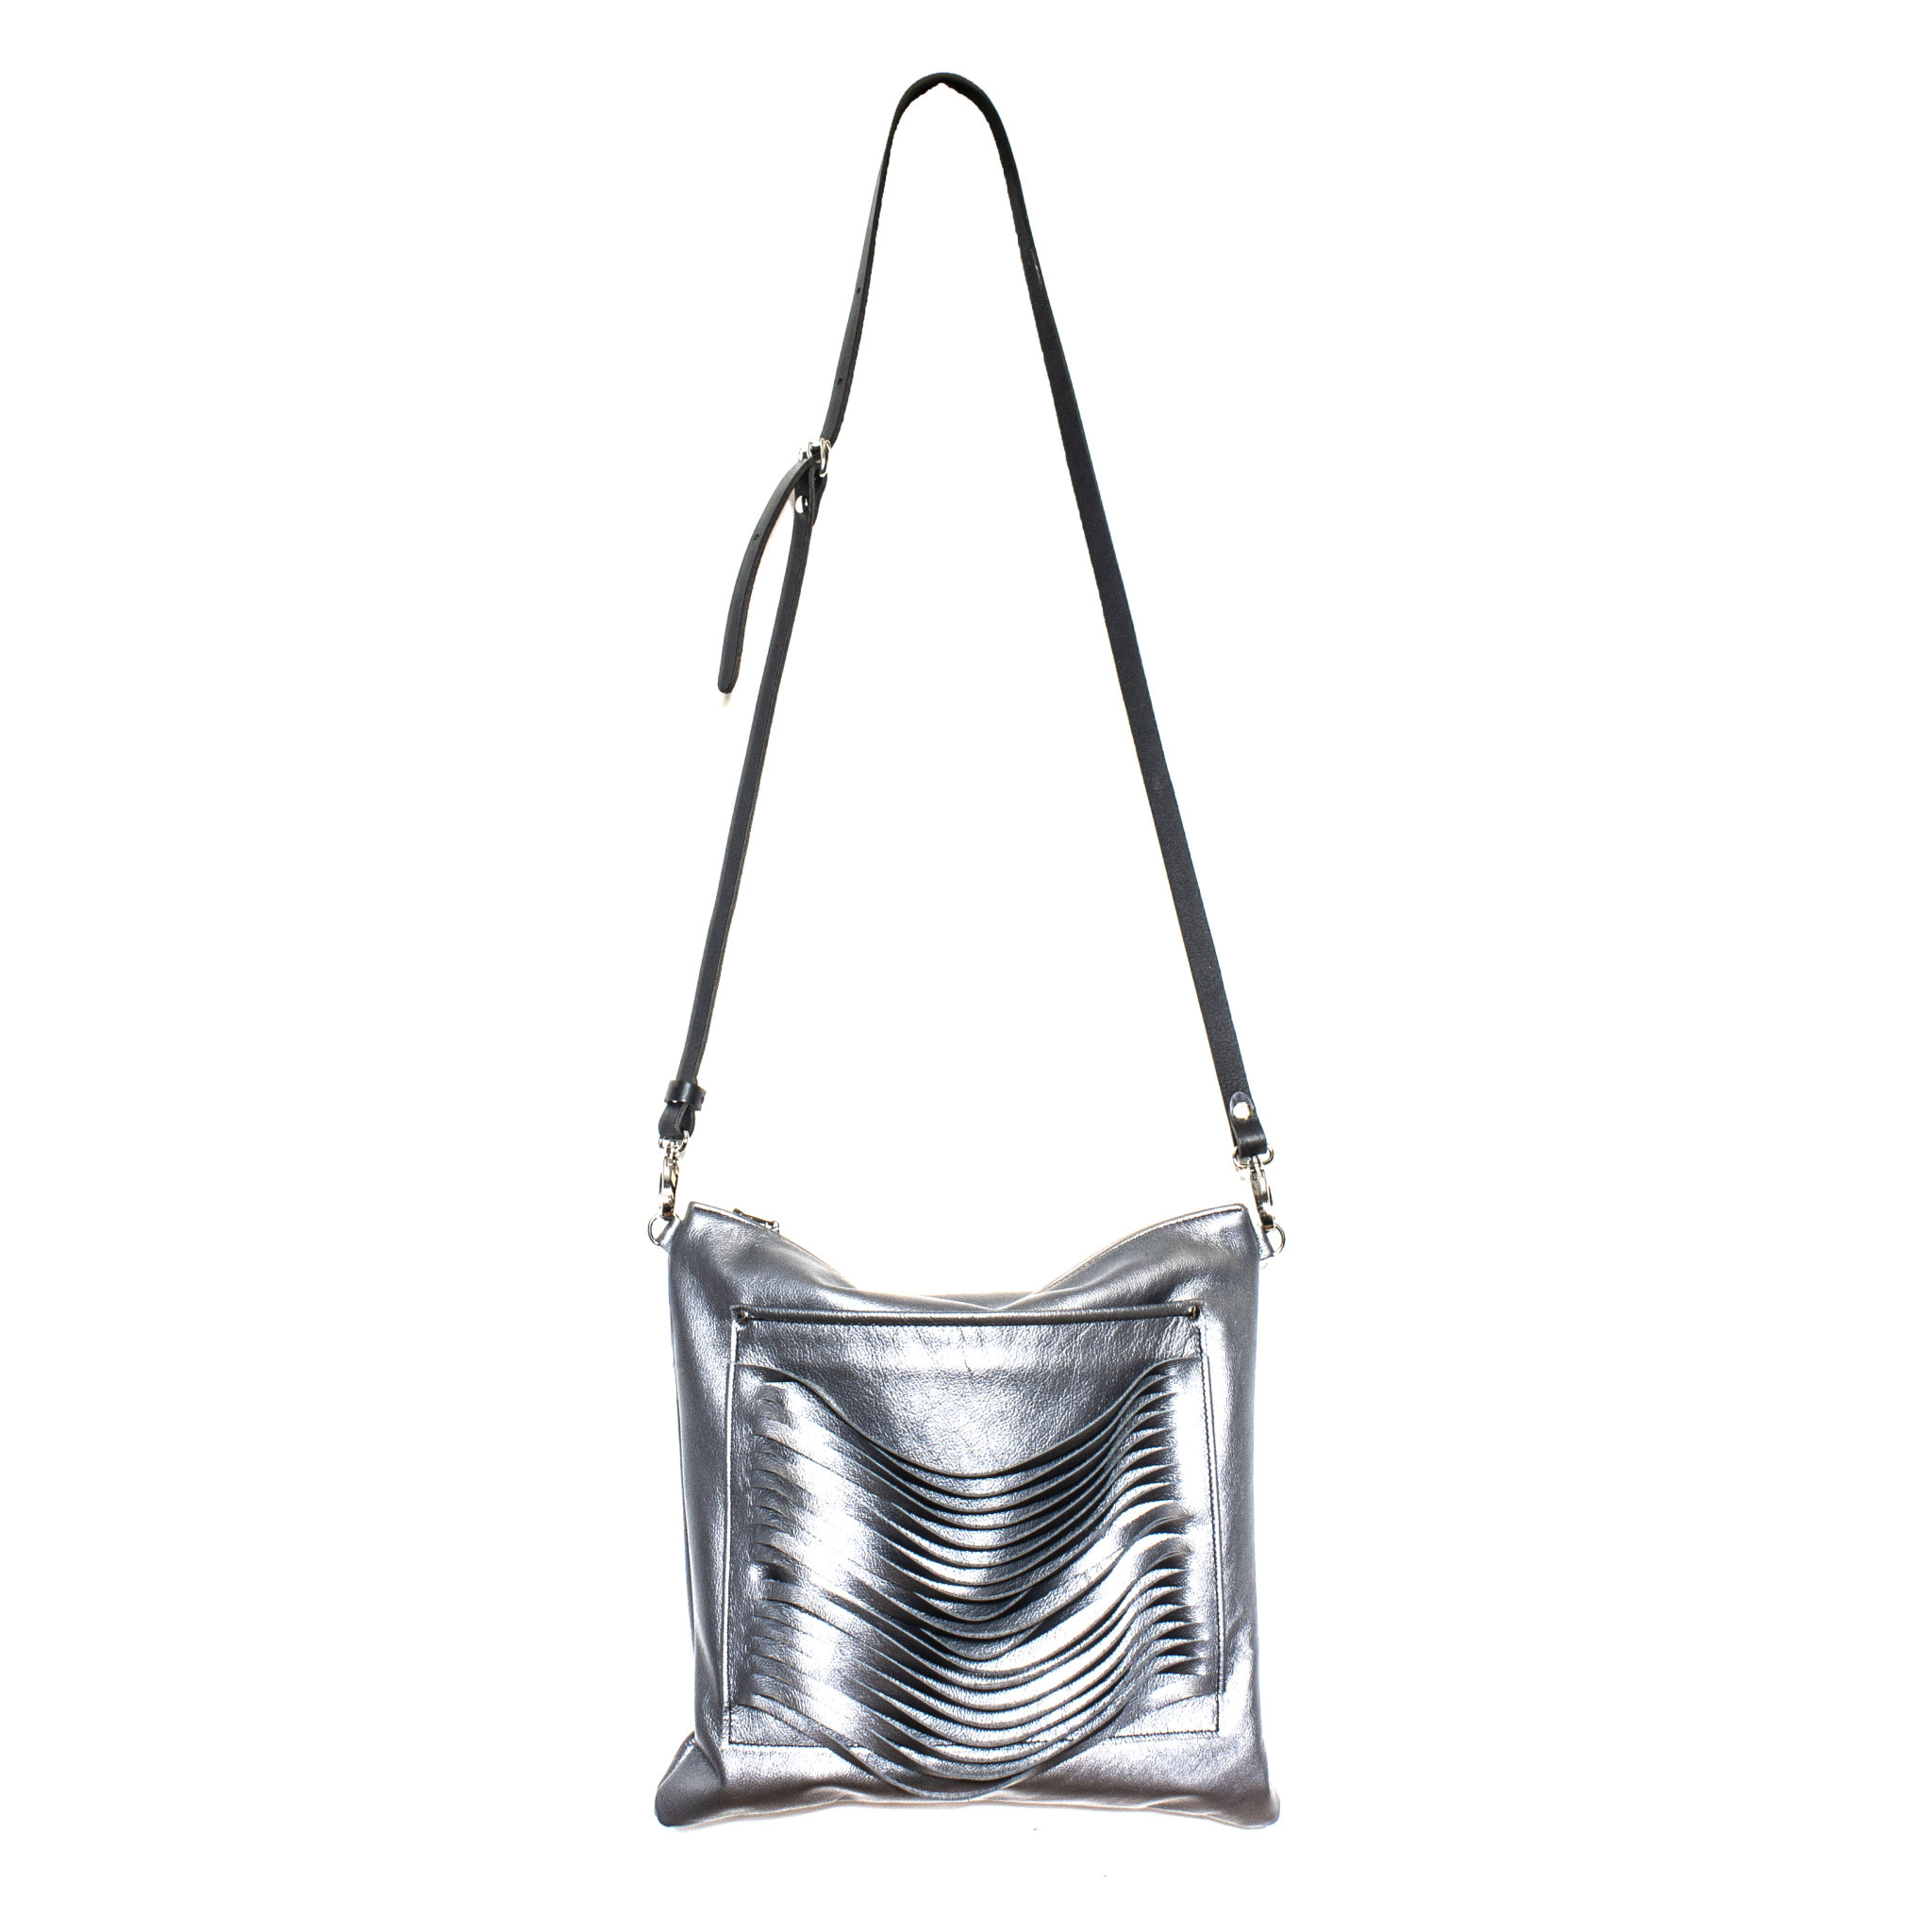 Lara B. Designs Lara B. Designs Cleo Crossbody Bag